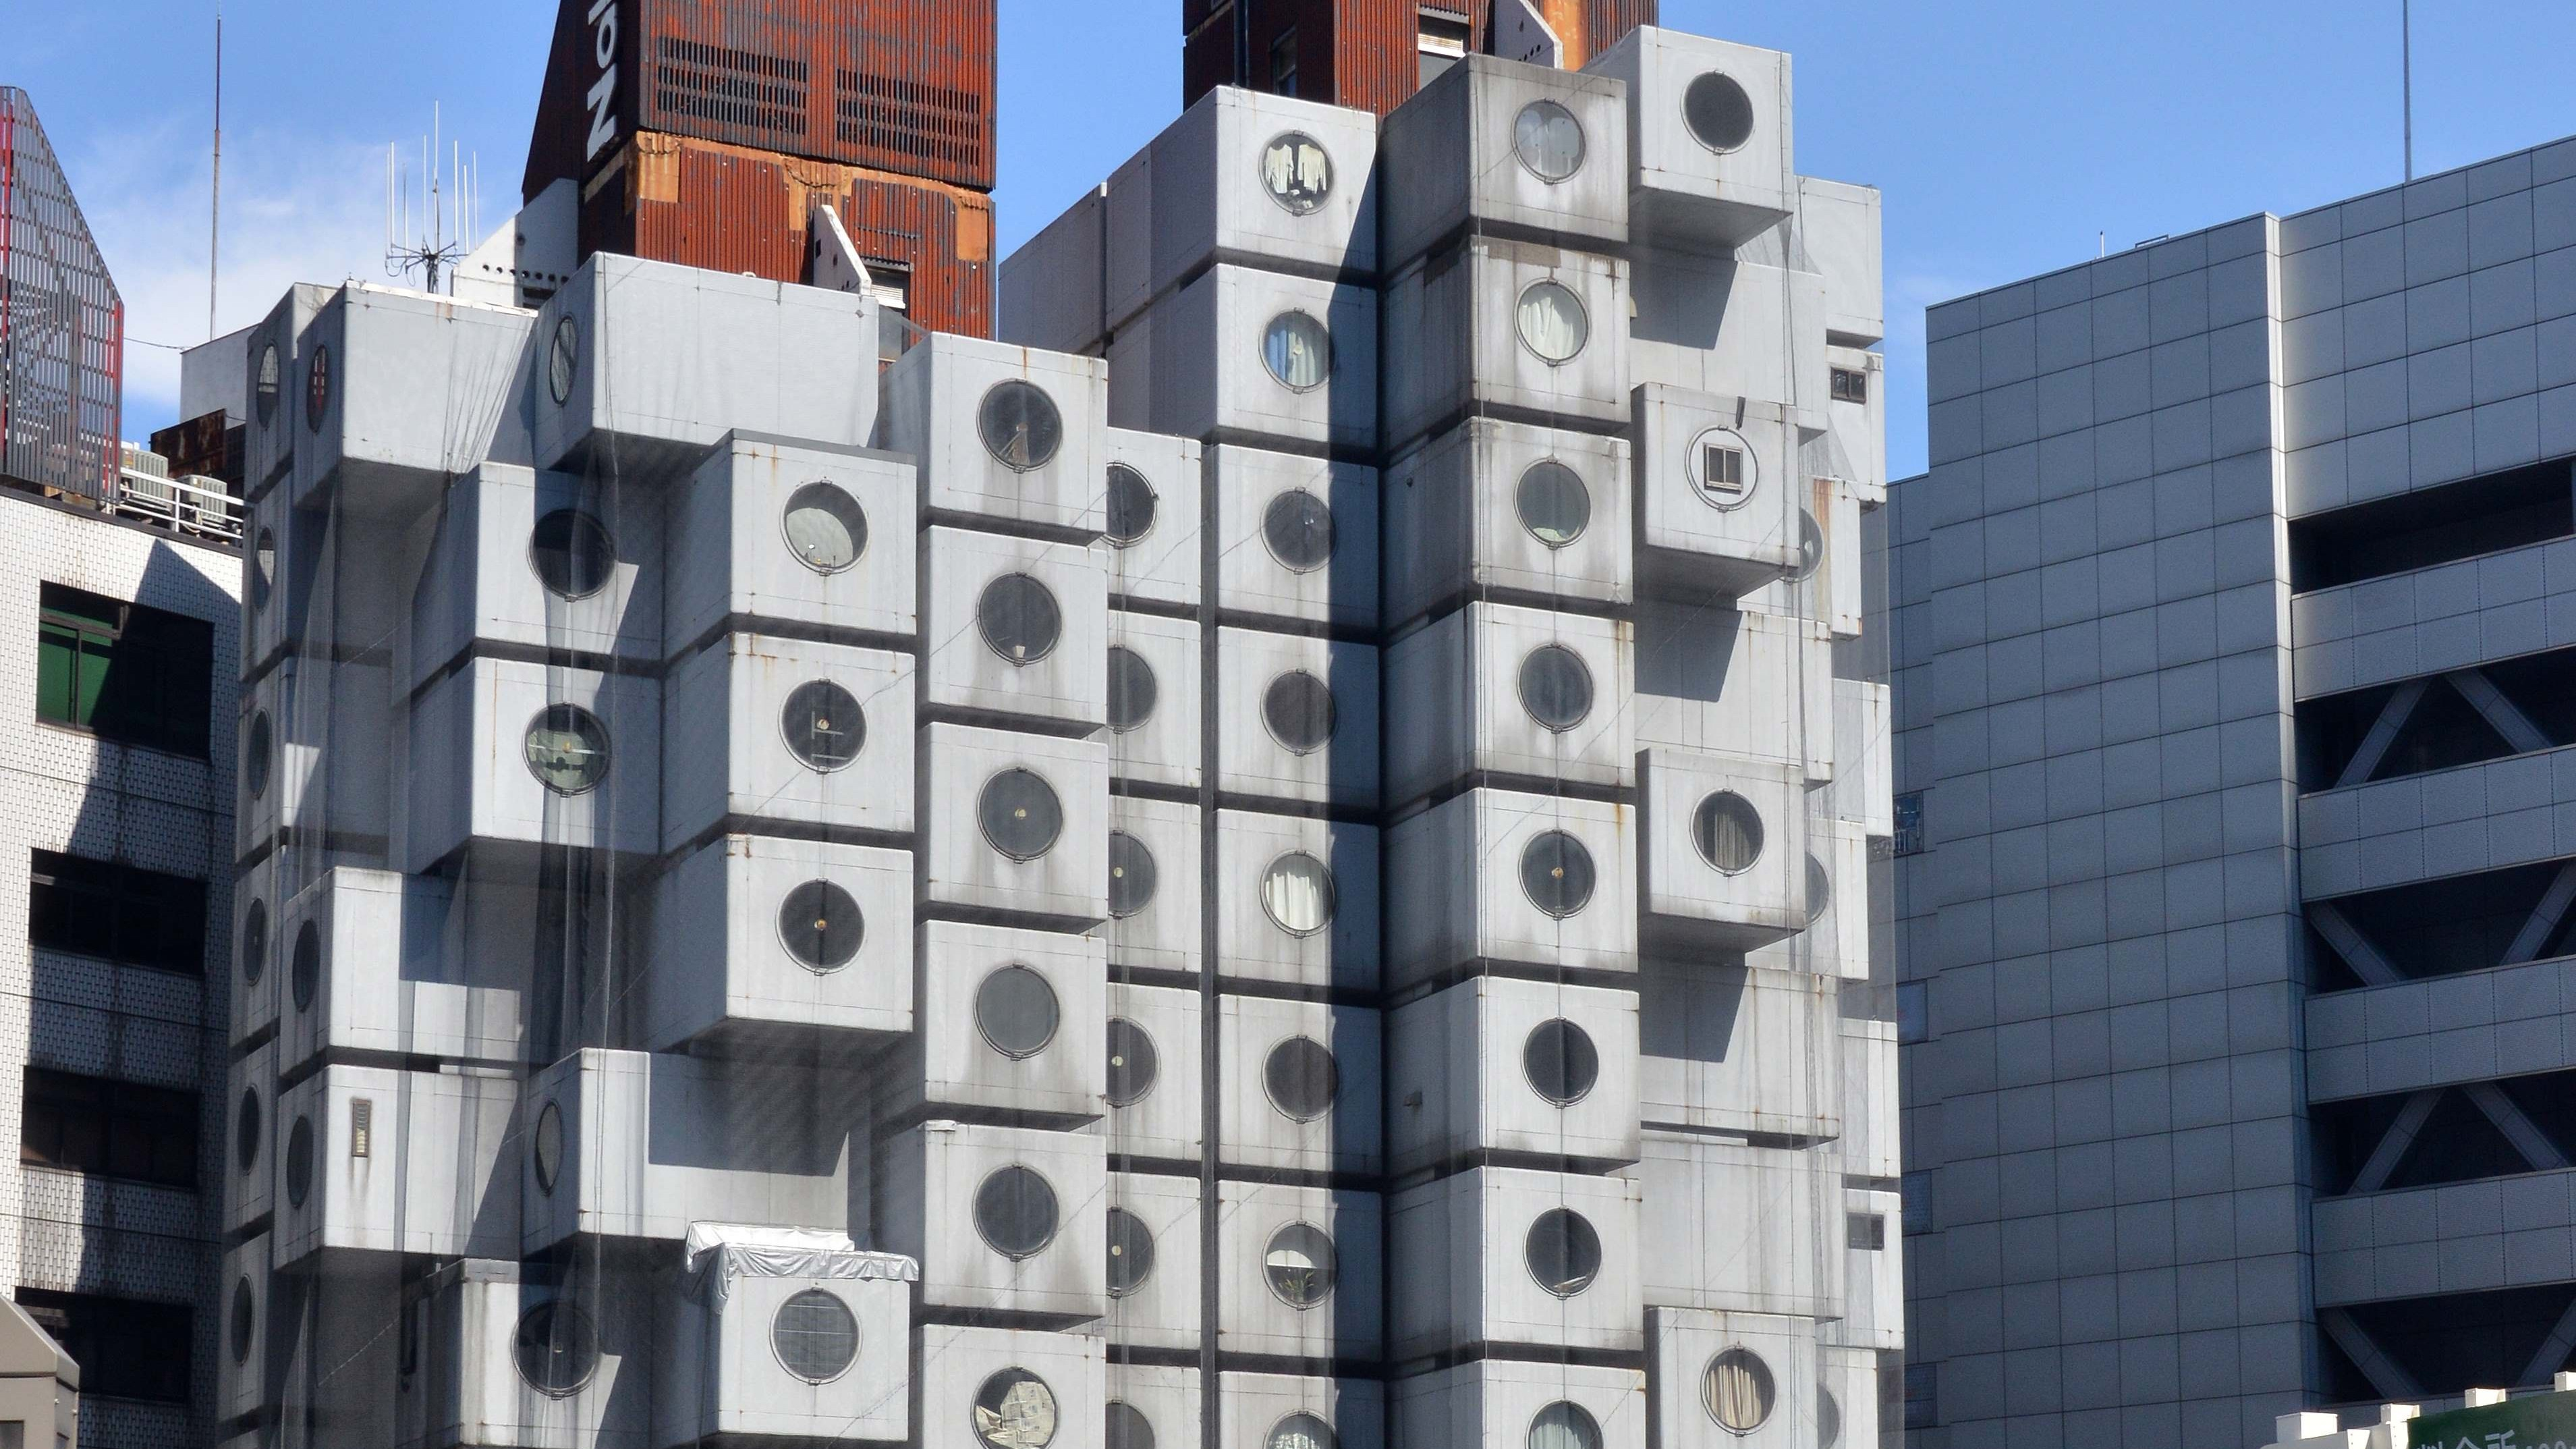 Metabolism The Japanese Architects Who Treated Buildings Like Living Organisms Cnn Style